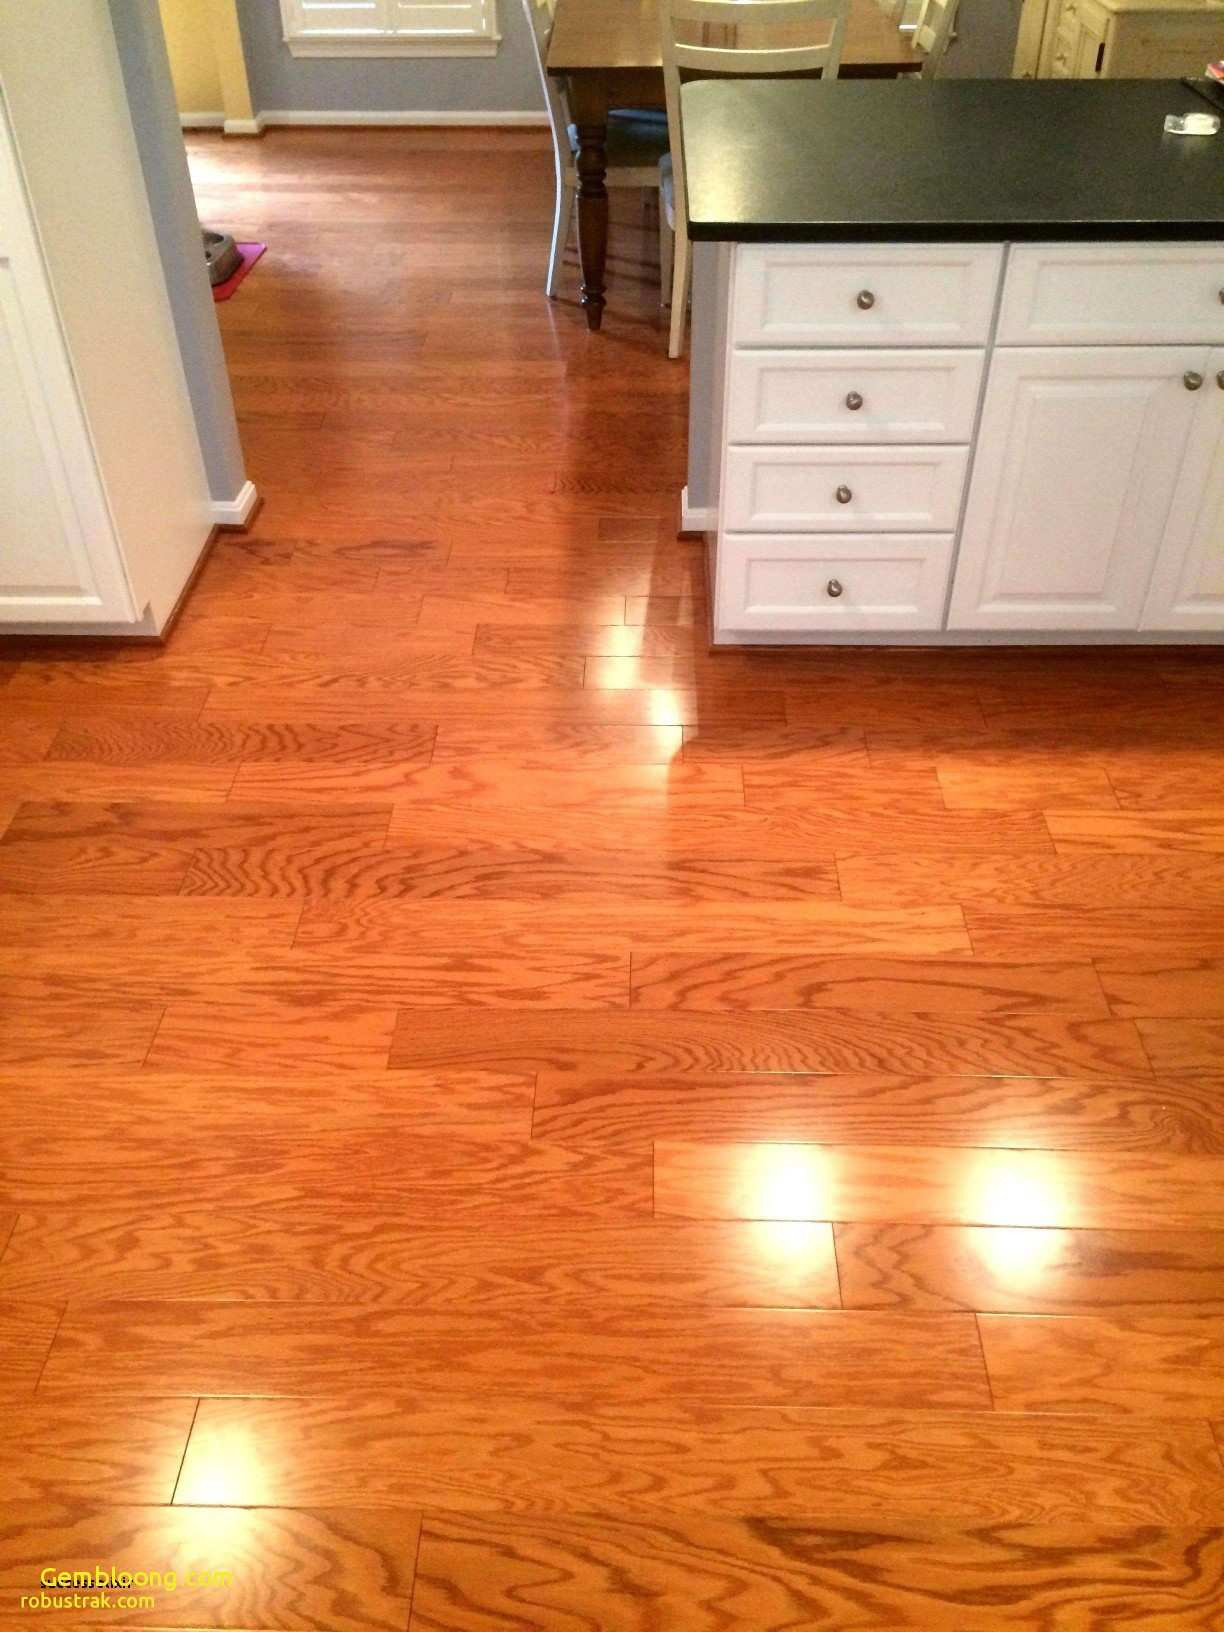 hardwood vs porcelain tile flooring of wood for floors facesinnature for hardwood floors in the kitchen fresh where to buy hardwood flooring inspirational 0d grace place barnegat